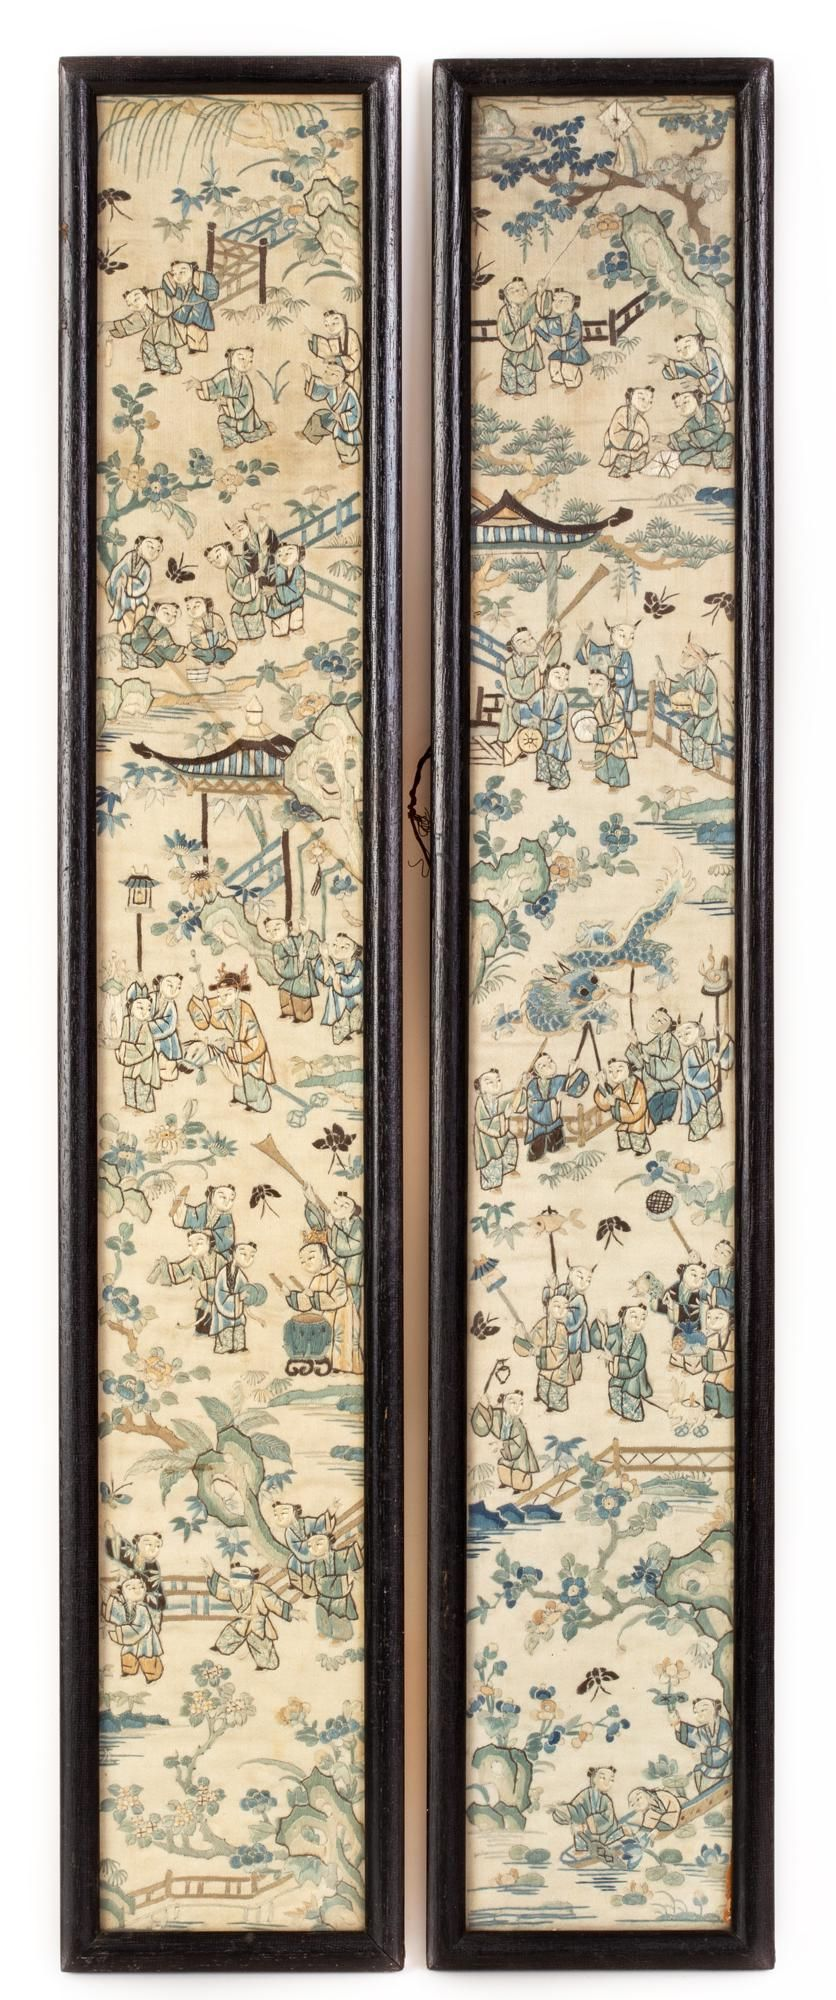 Two Old Silk Embroideries - China